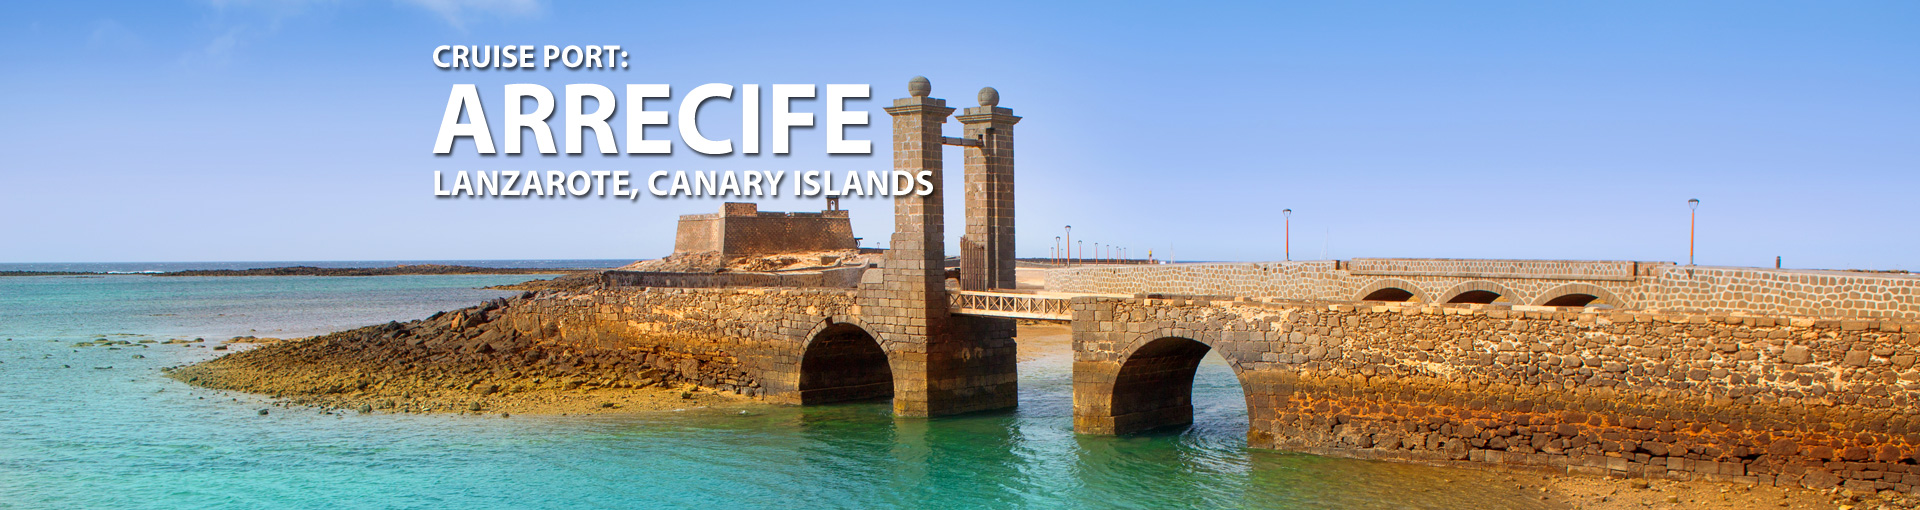 Cruises to Arrecife, Lanzarote, Canary Islands